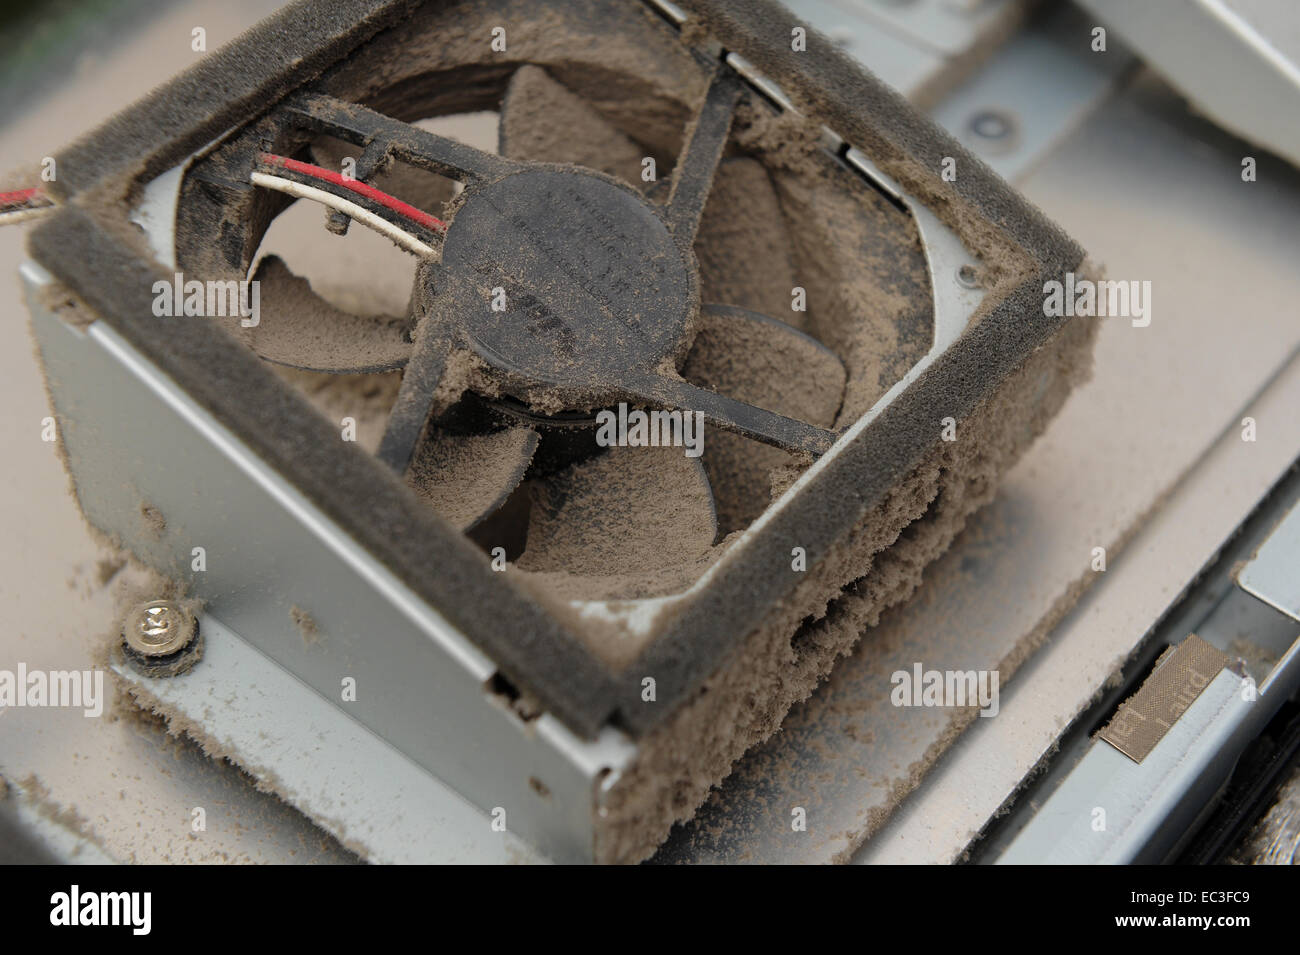 Cooling Fans For Electronic Equipment : Dust accumulation inside electronic equipment showing